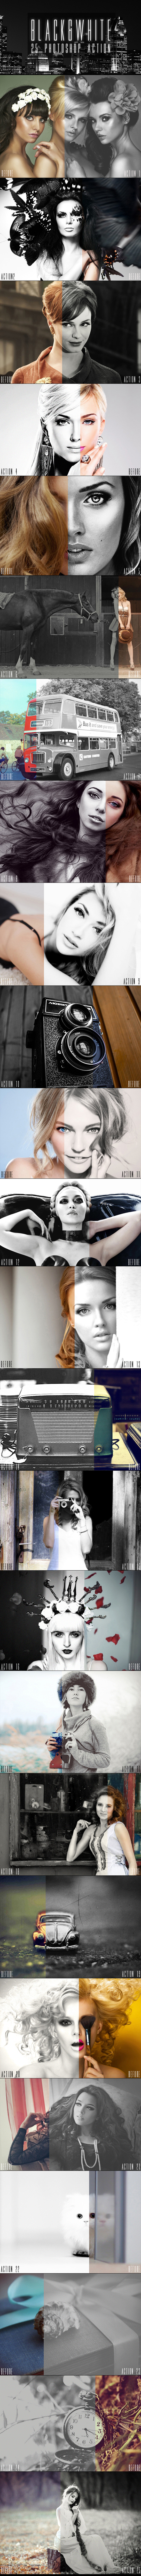 GraphicRiver 25 Black & White Photoshop Actions 11527320